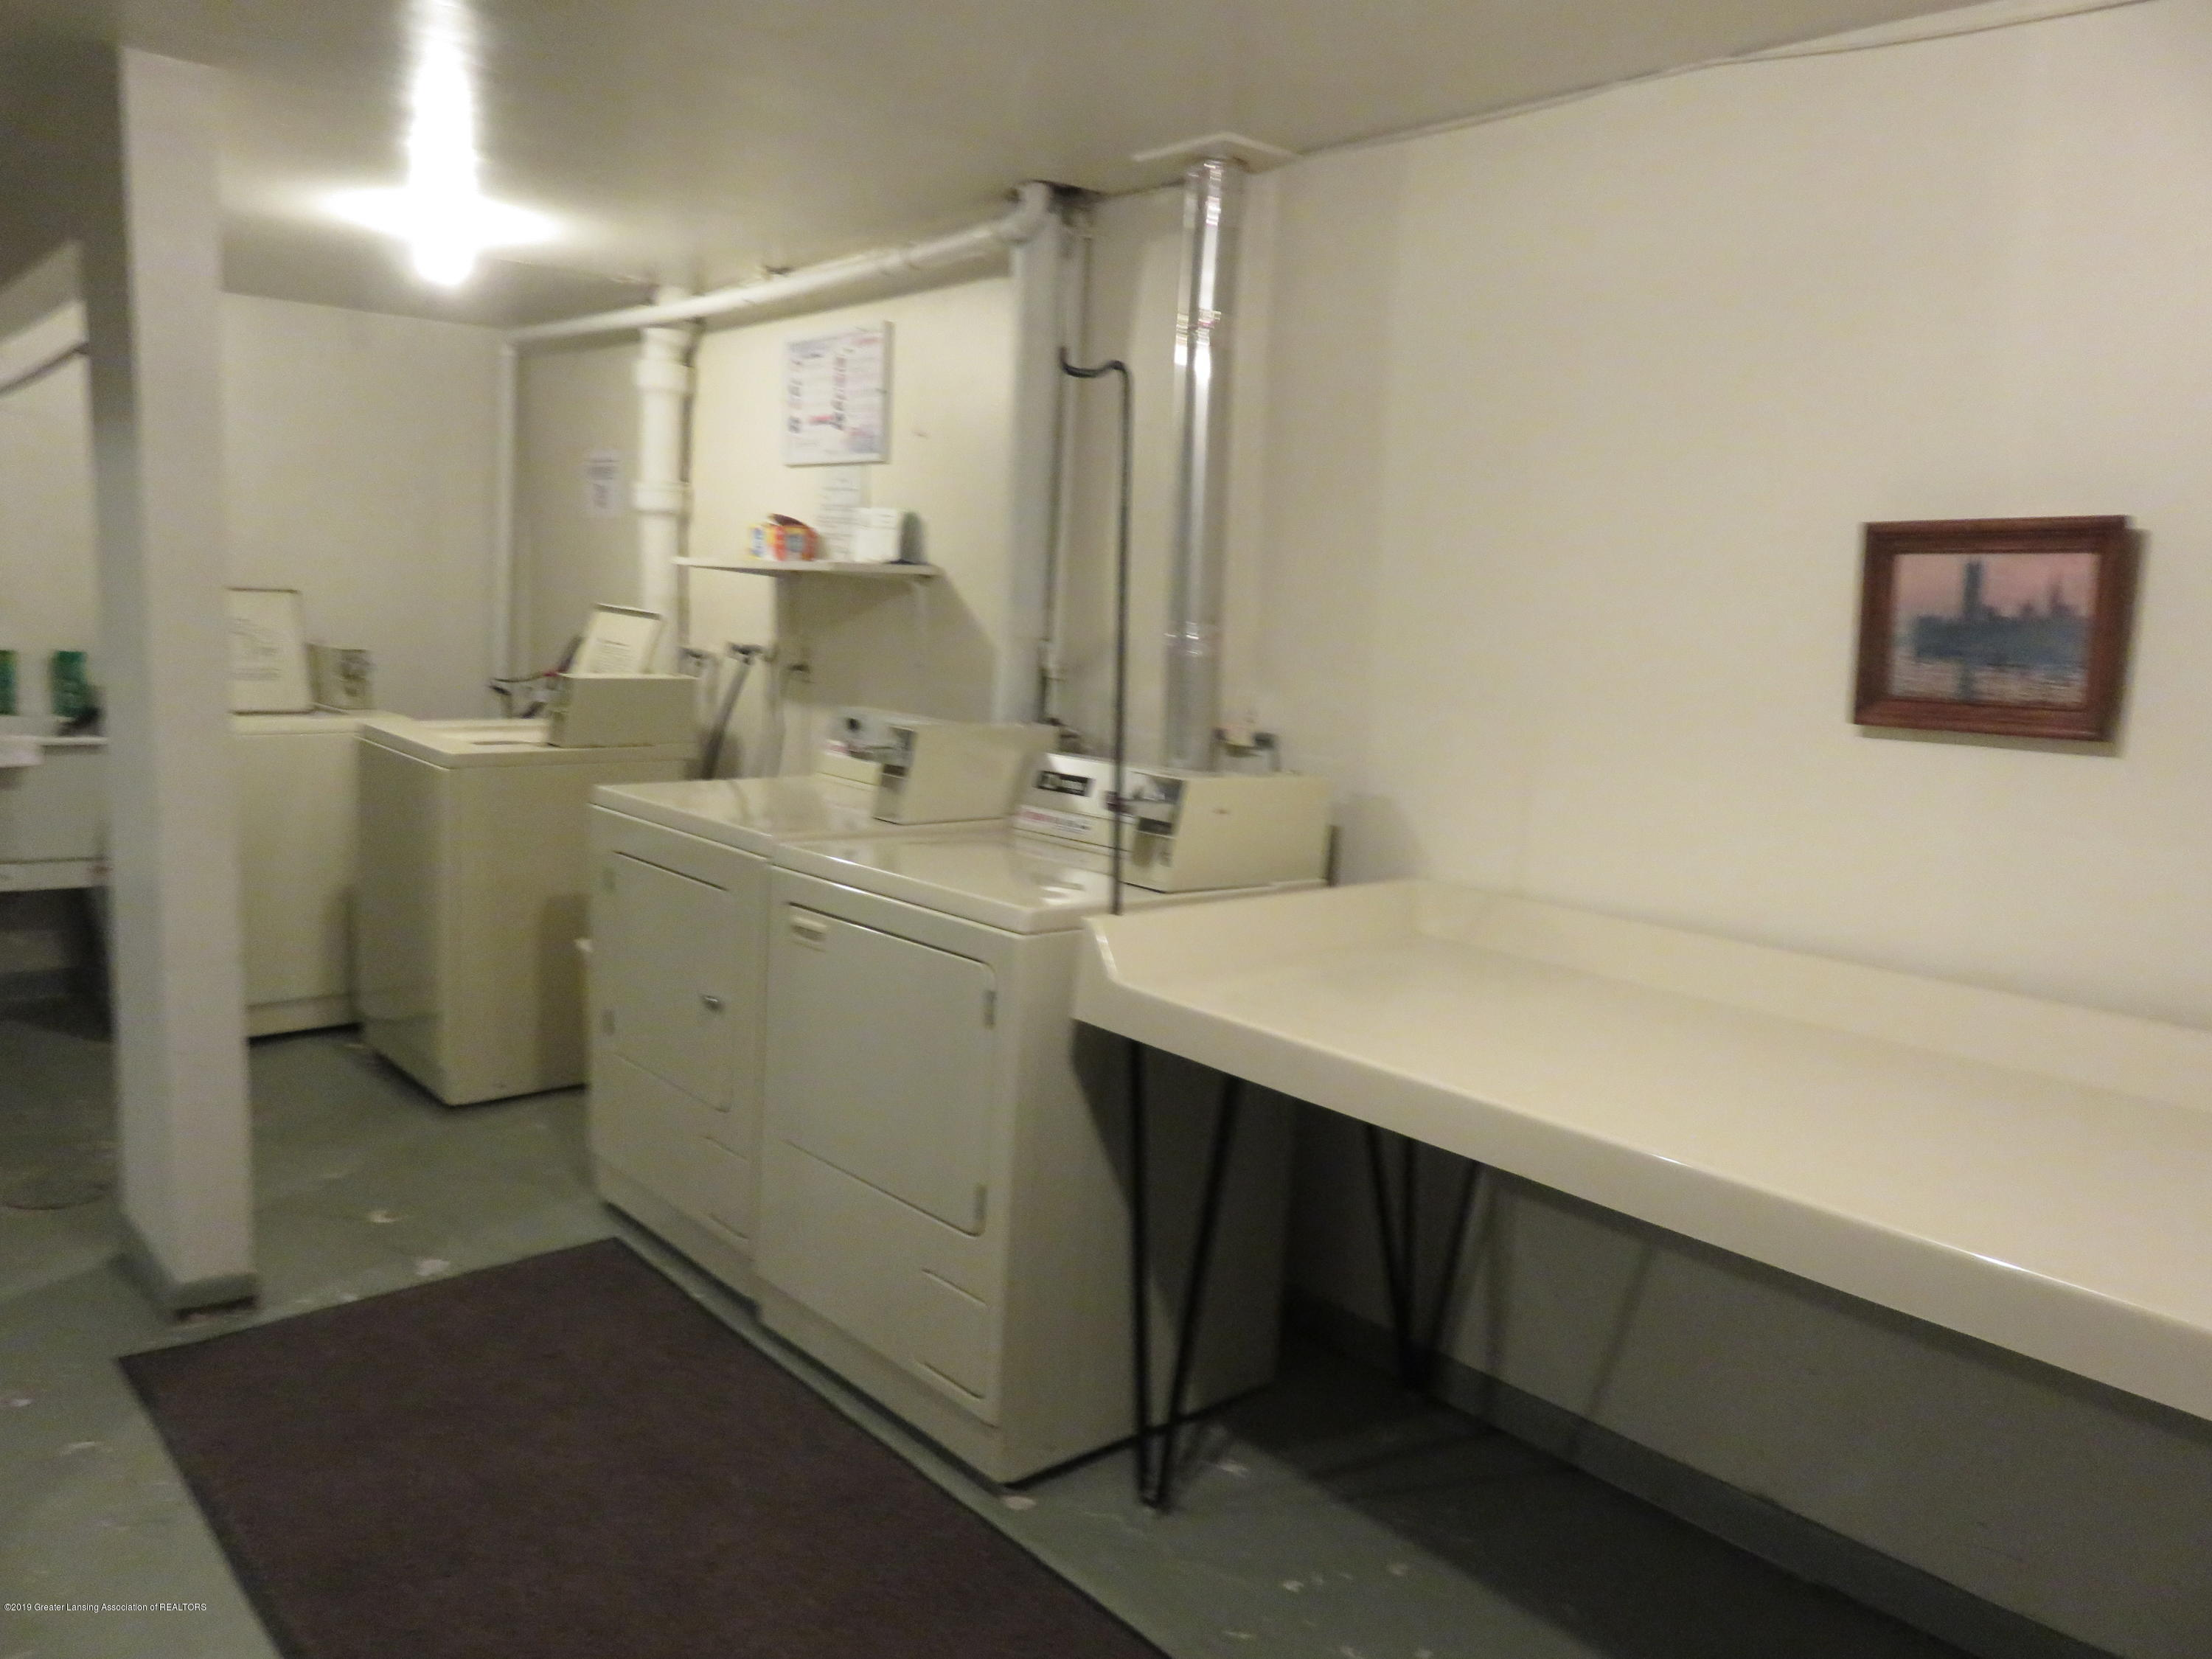 3333 Moores River Dr Apt 801 - Laundry Area - 19